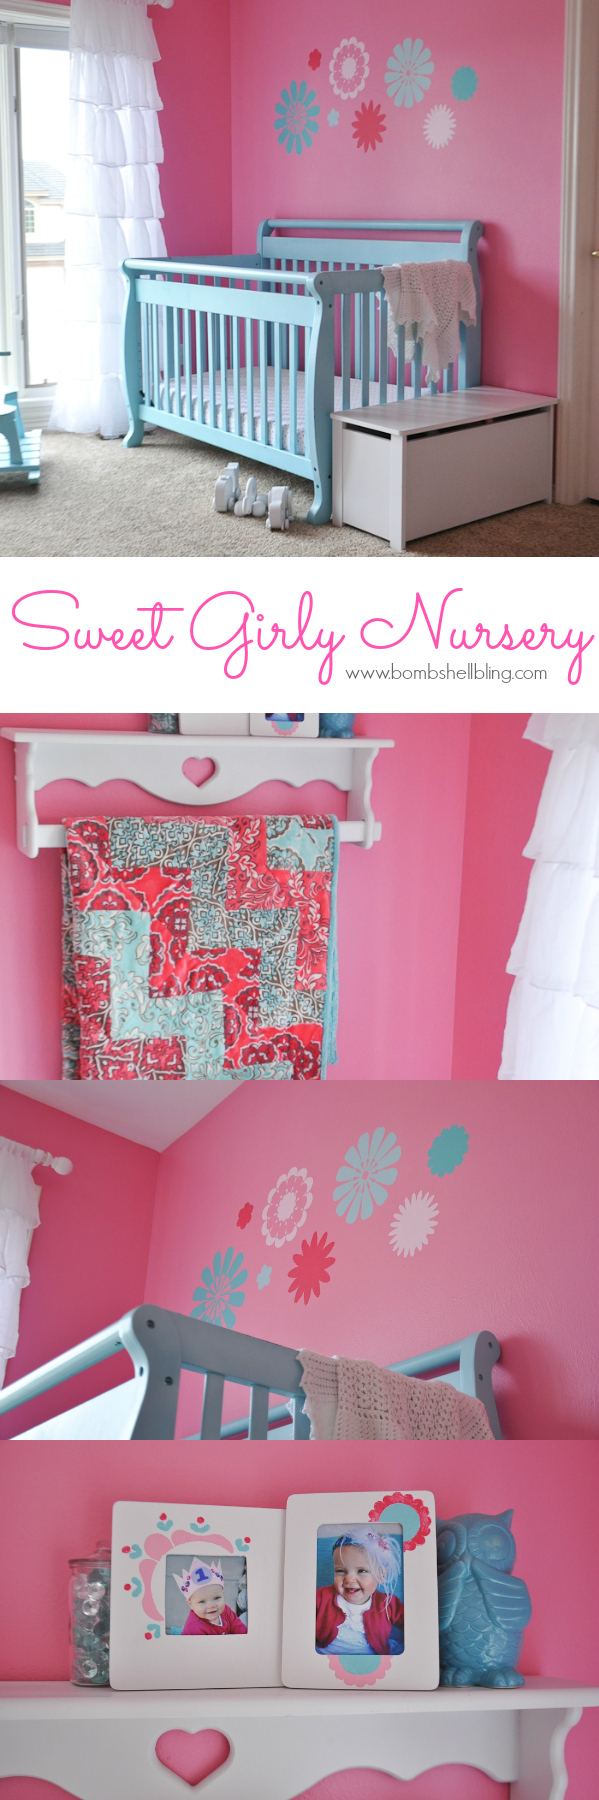 Sweet Girly Nursery